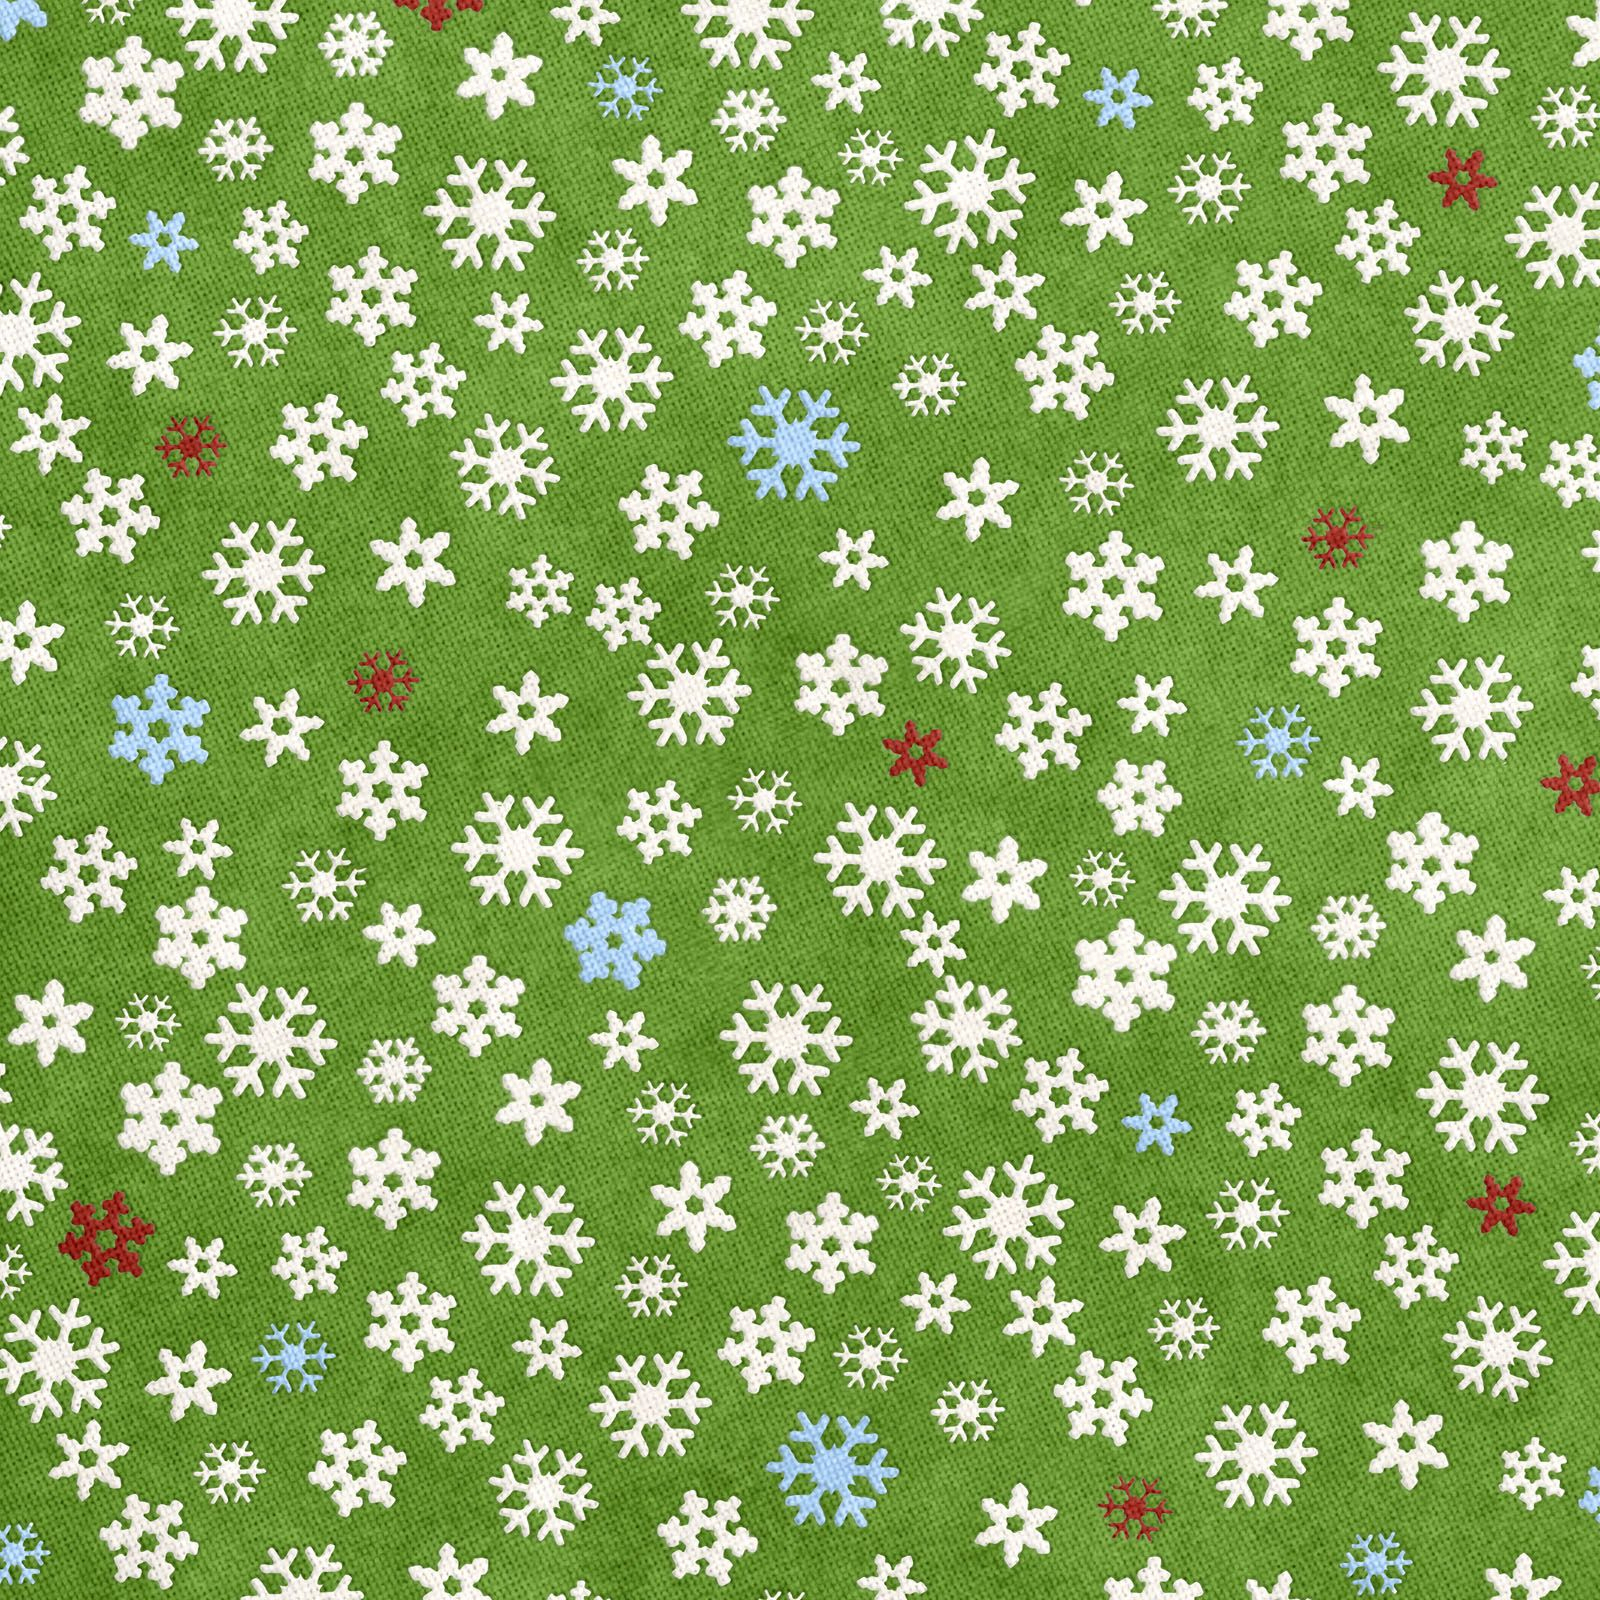 Free Printable Christmas Gift Wrapping Paper - Snowflakes On Green - Free Printable Christmas Paper